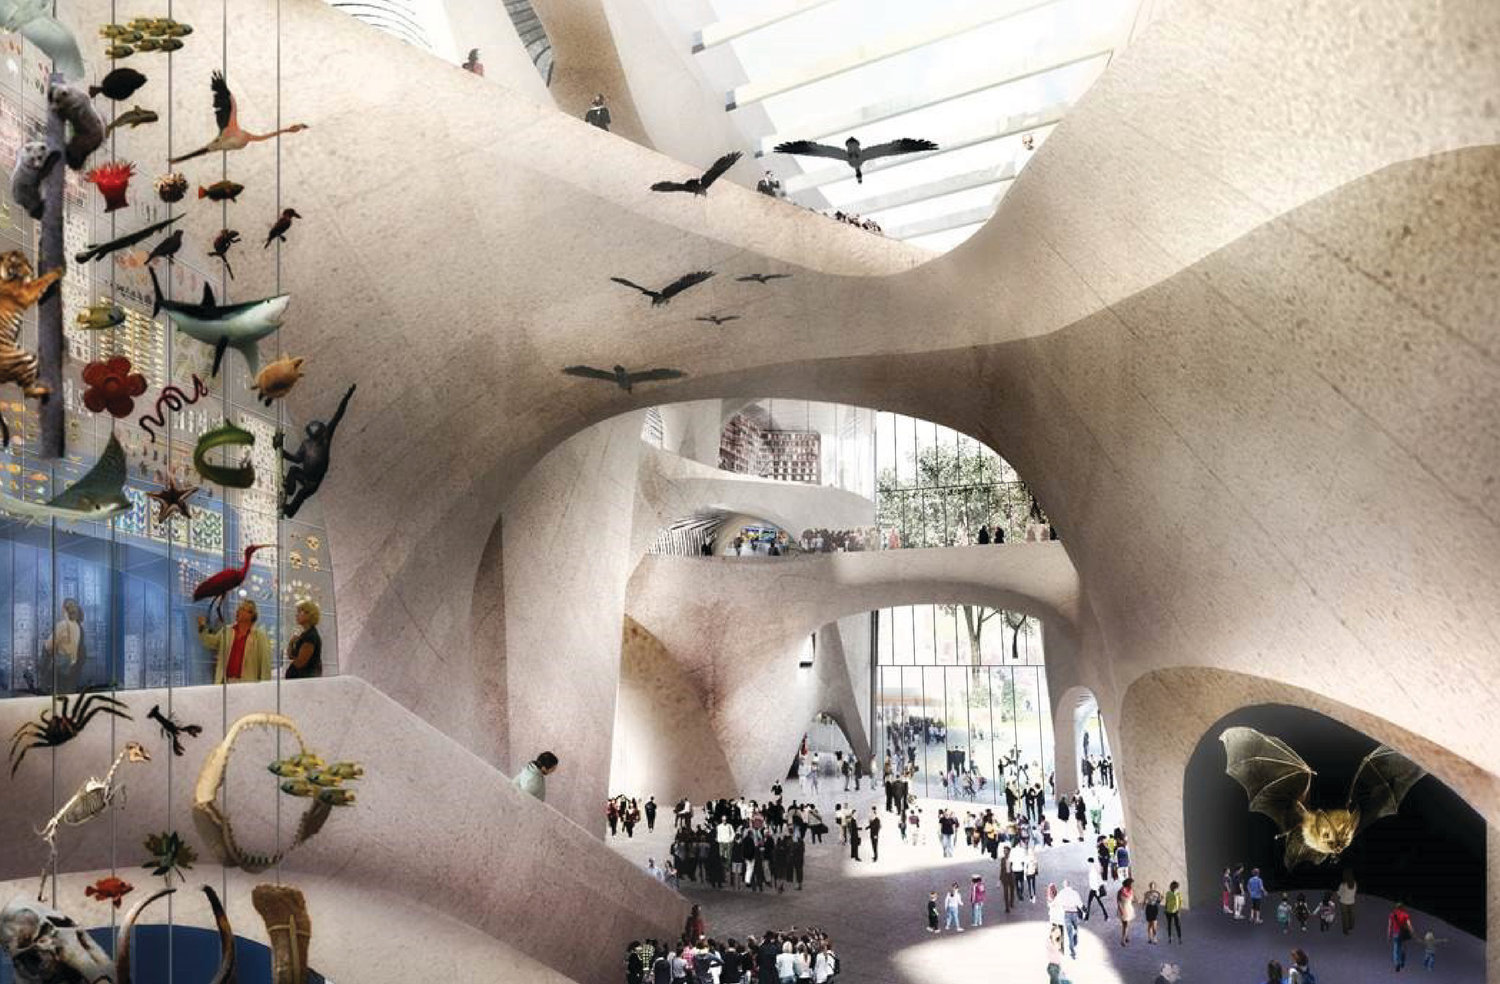 A rendering of the central exhibition hall of the proposed Richard Gilder Center for Science, Education and Innovation at the American Museum of Natural History.